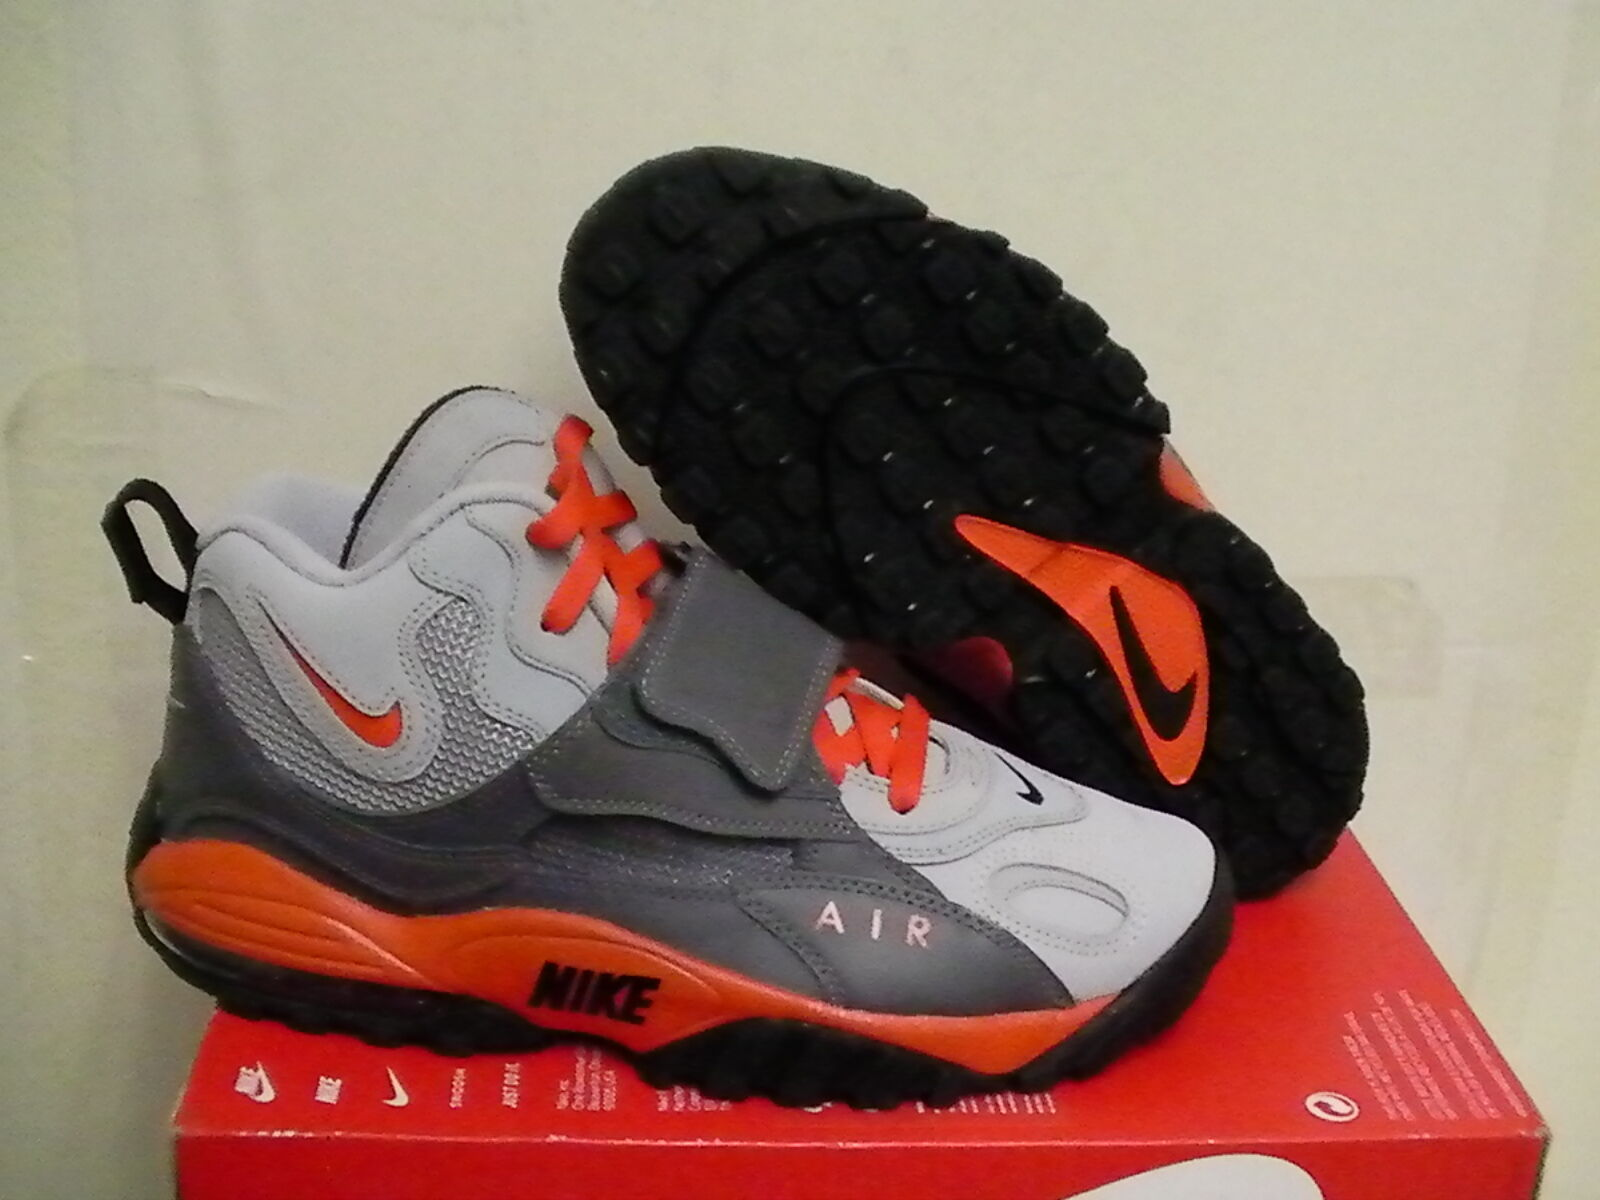 Nike 9.5 air max speed turf size 9.5 Nike us new with box f6a540